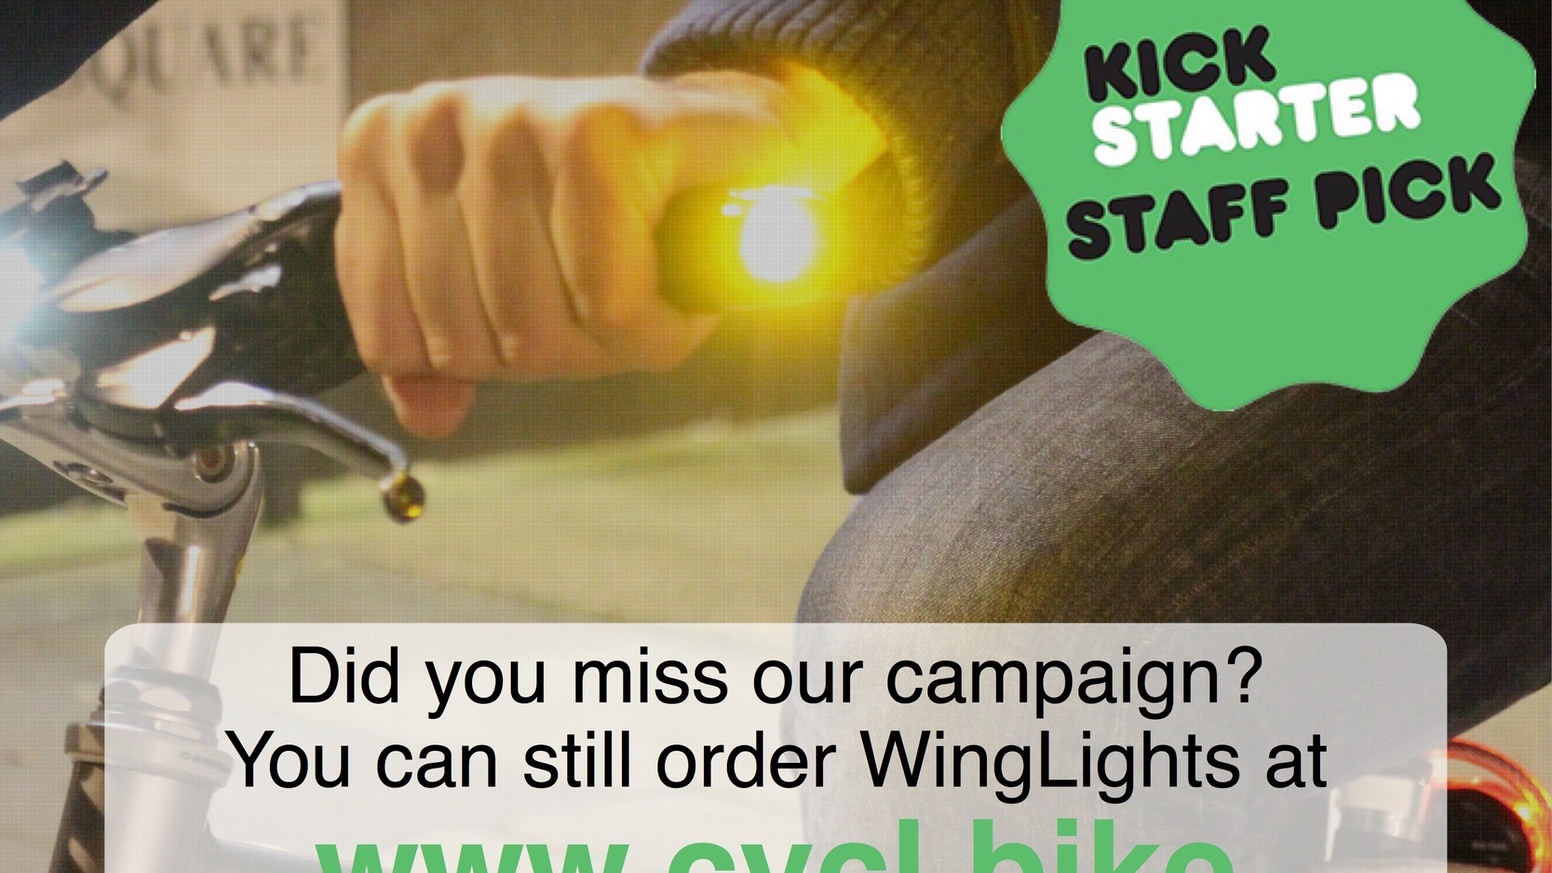 Did you miss our campaign? You can still order WingLights at www.cycl.bike